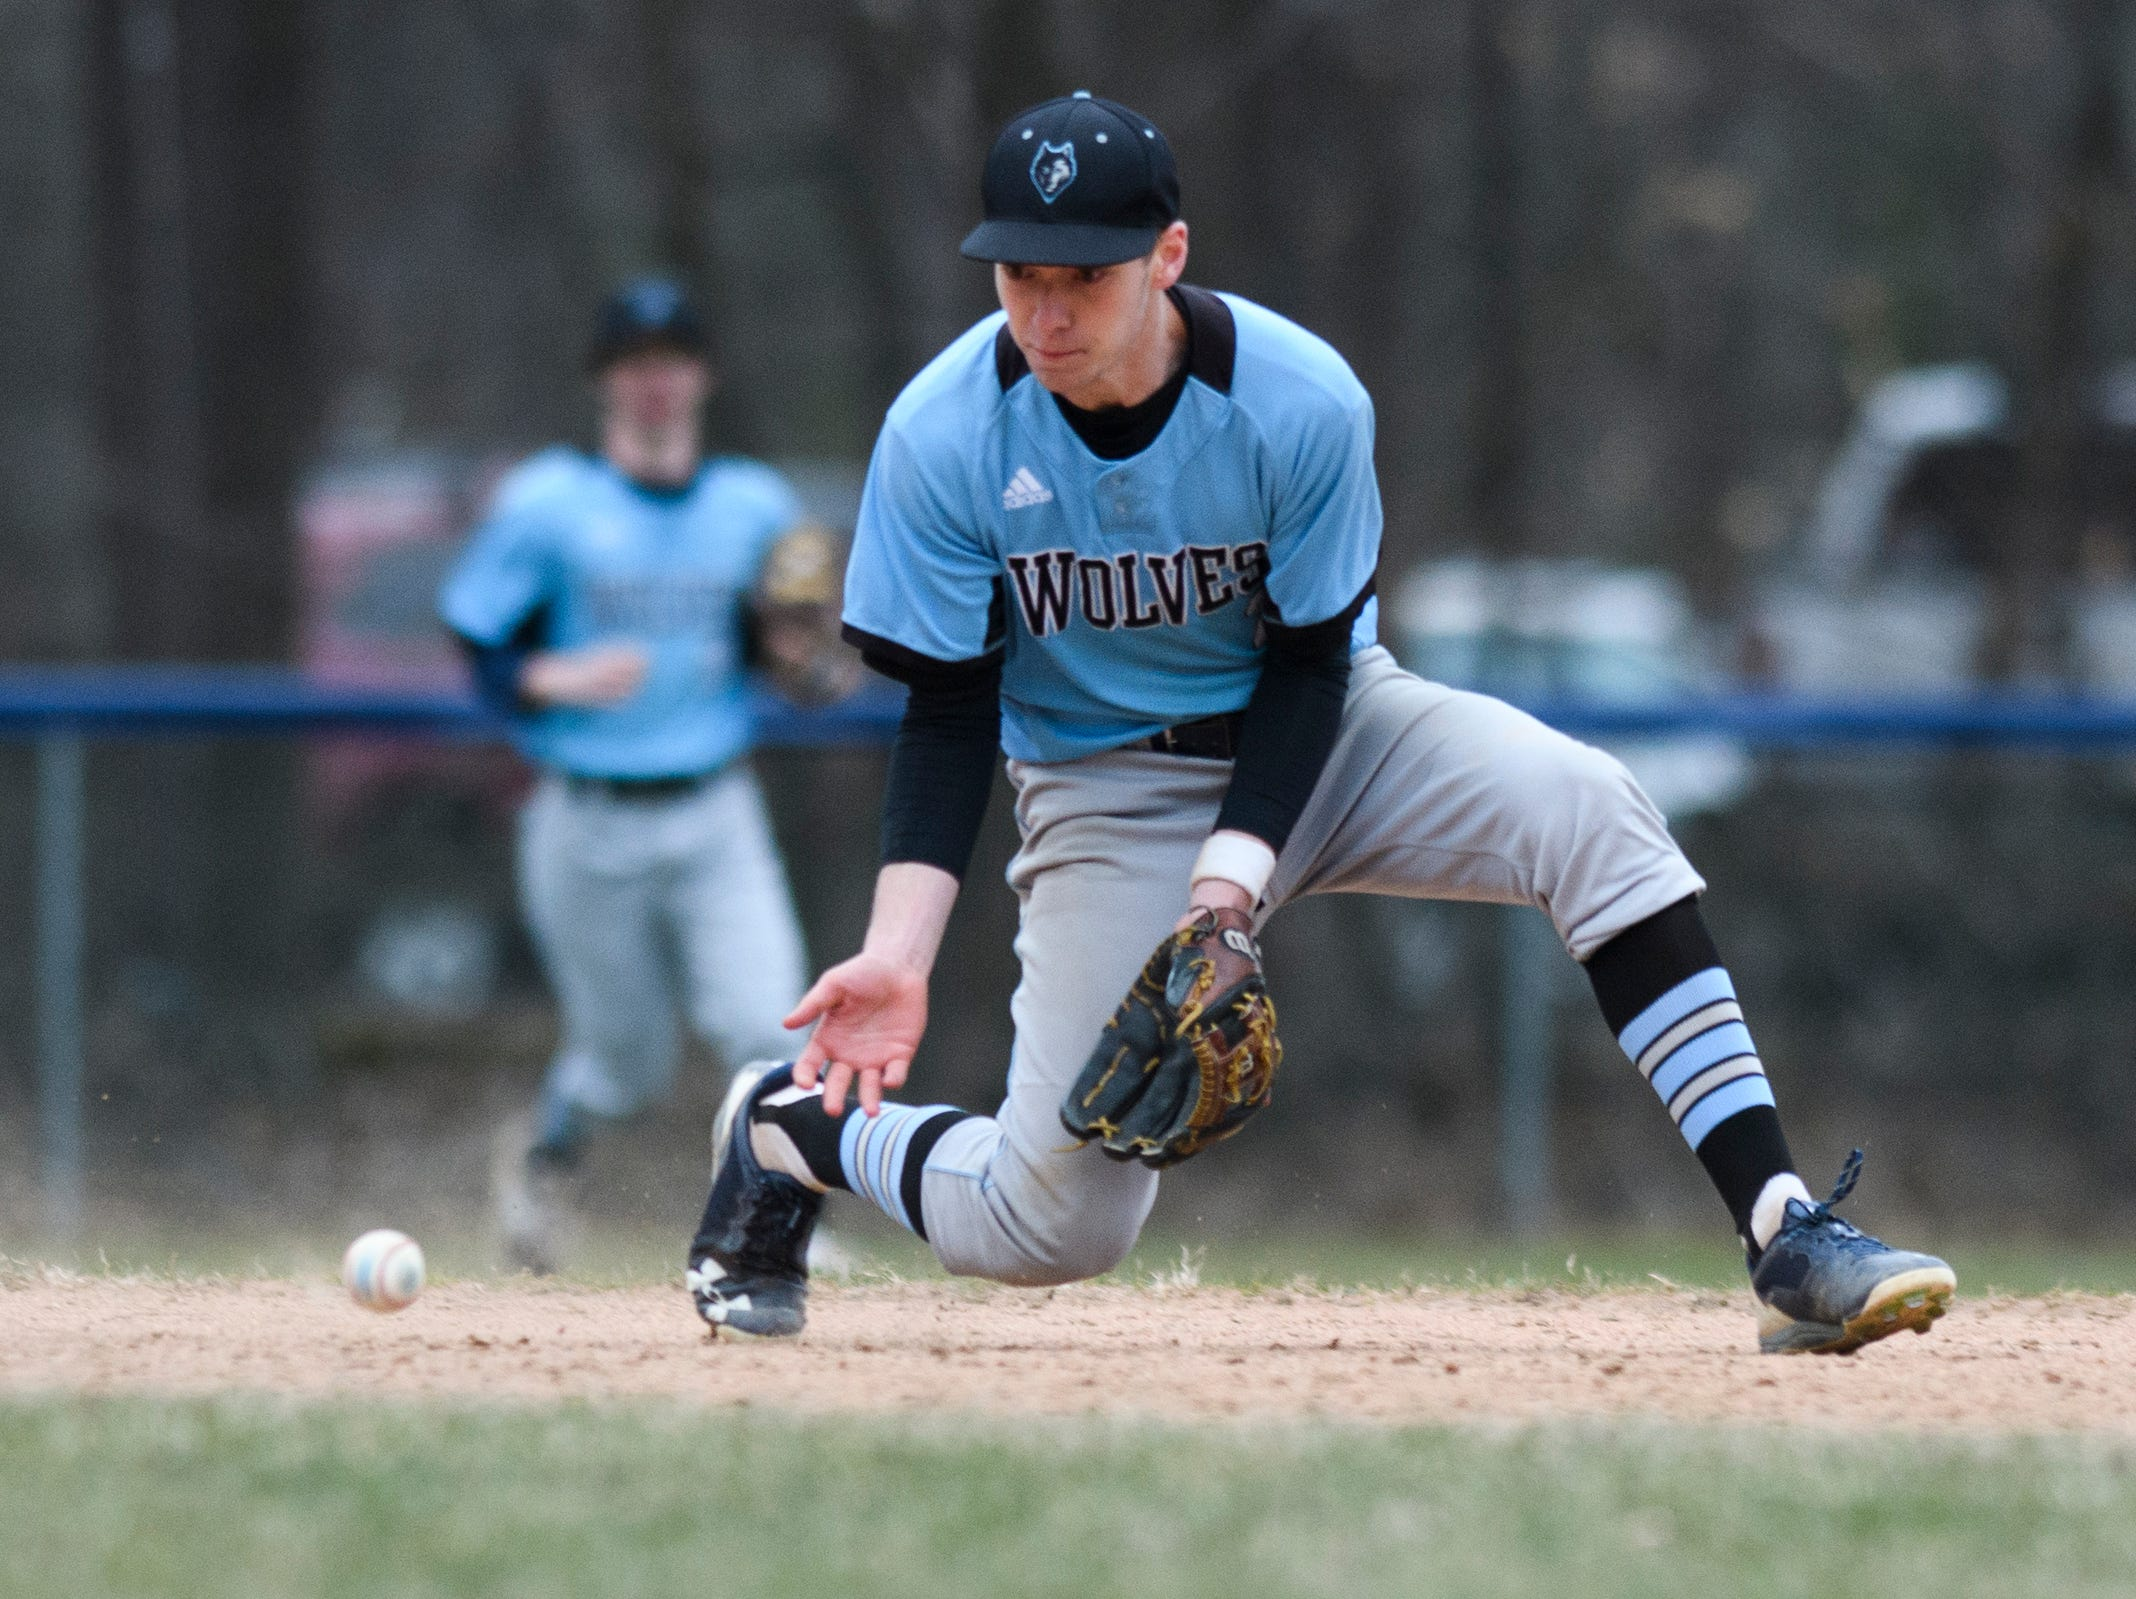 South Burlington short stop Nolan Antonicci (2) plays the ball during the boys baseball game between the South Burlington Wolves and the Colchester Lakers at Colchester high school on Thursday afternoon April 18, 2019 in Colchester, Vermont.